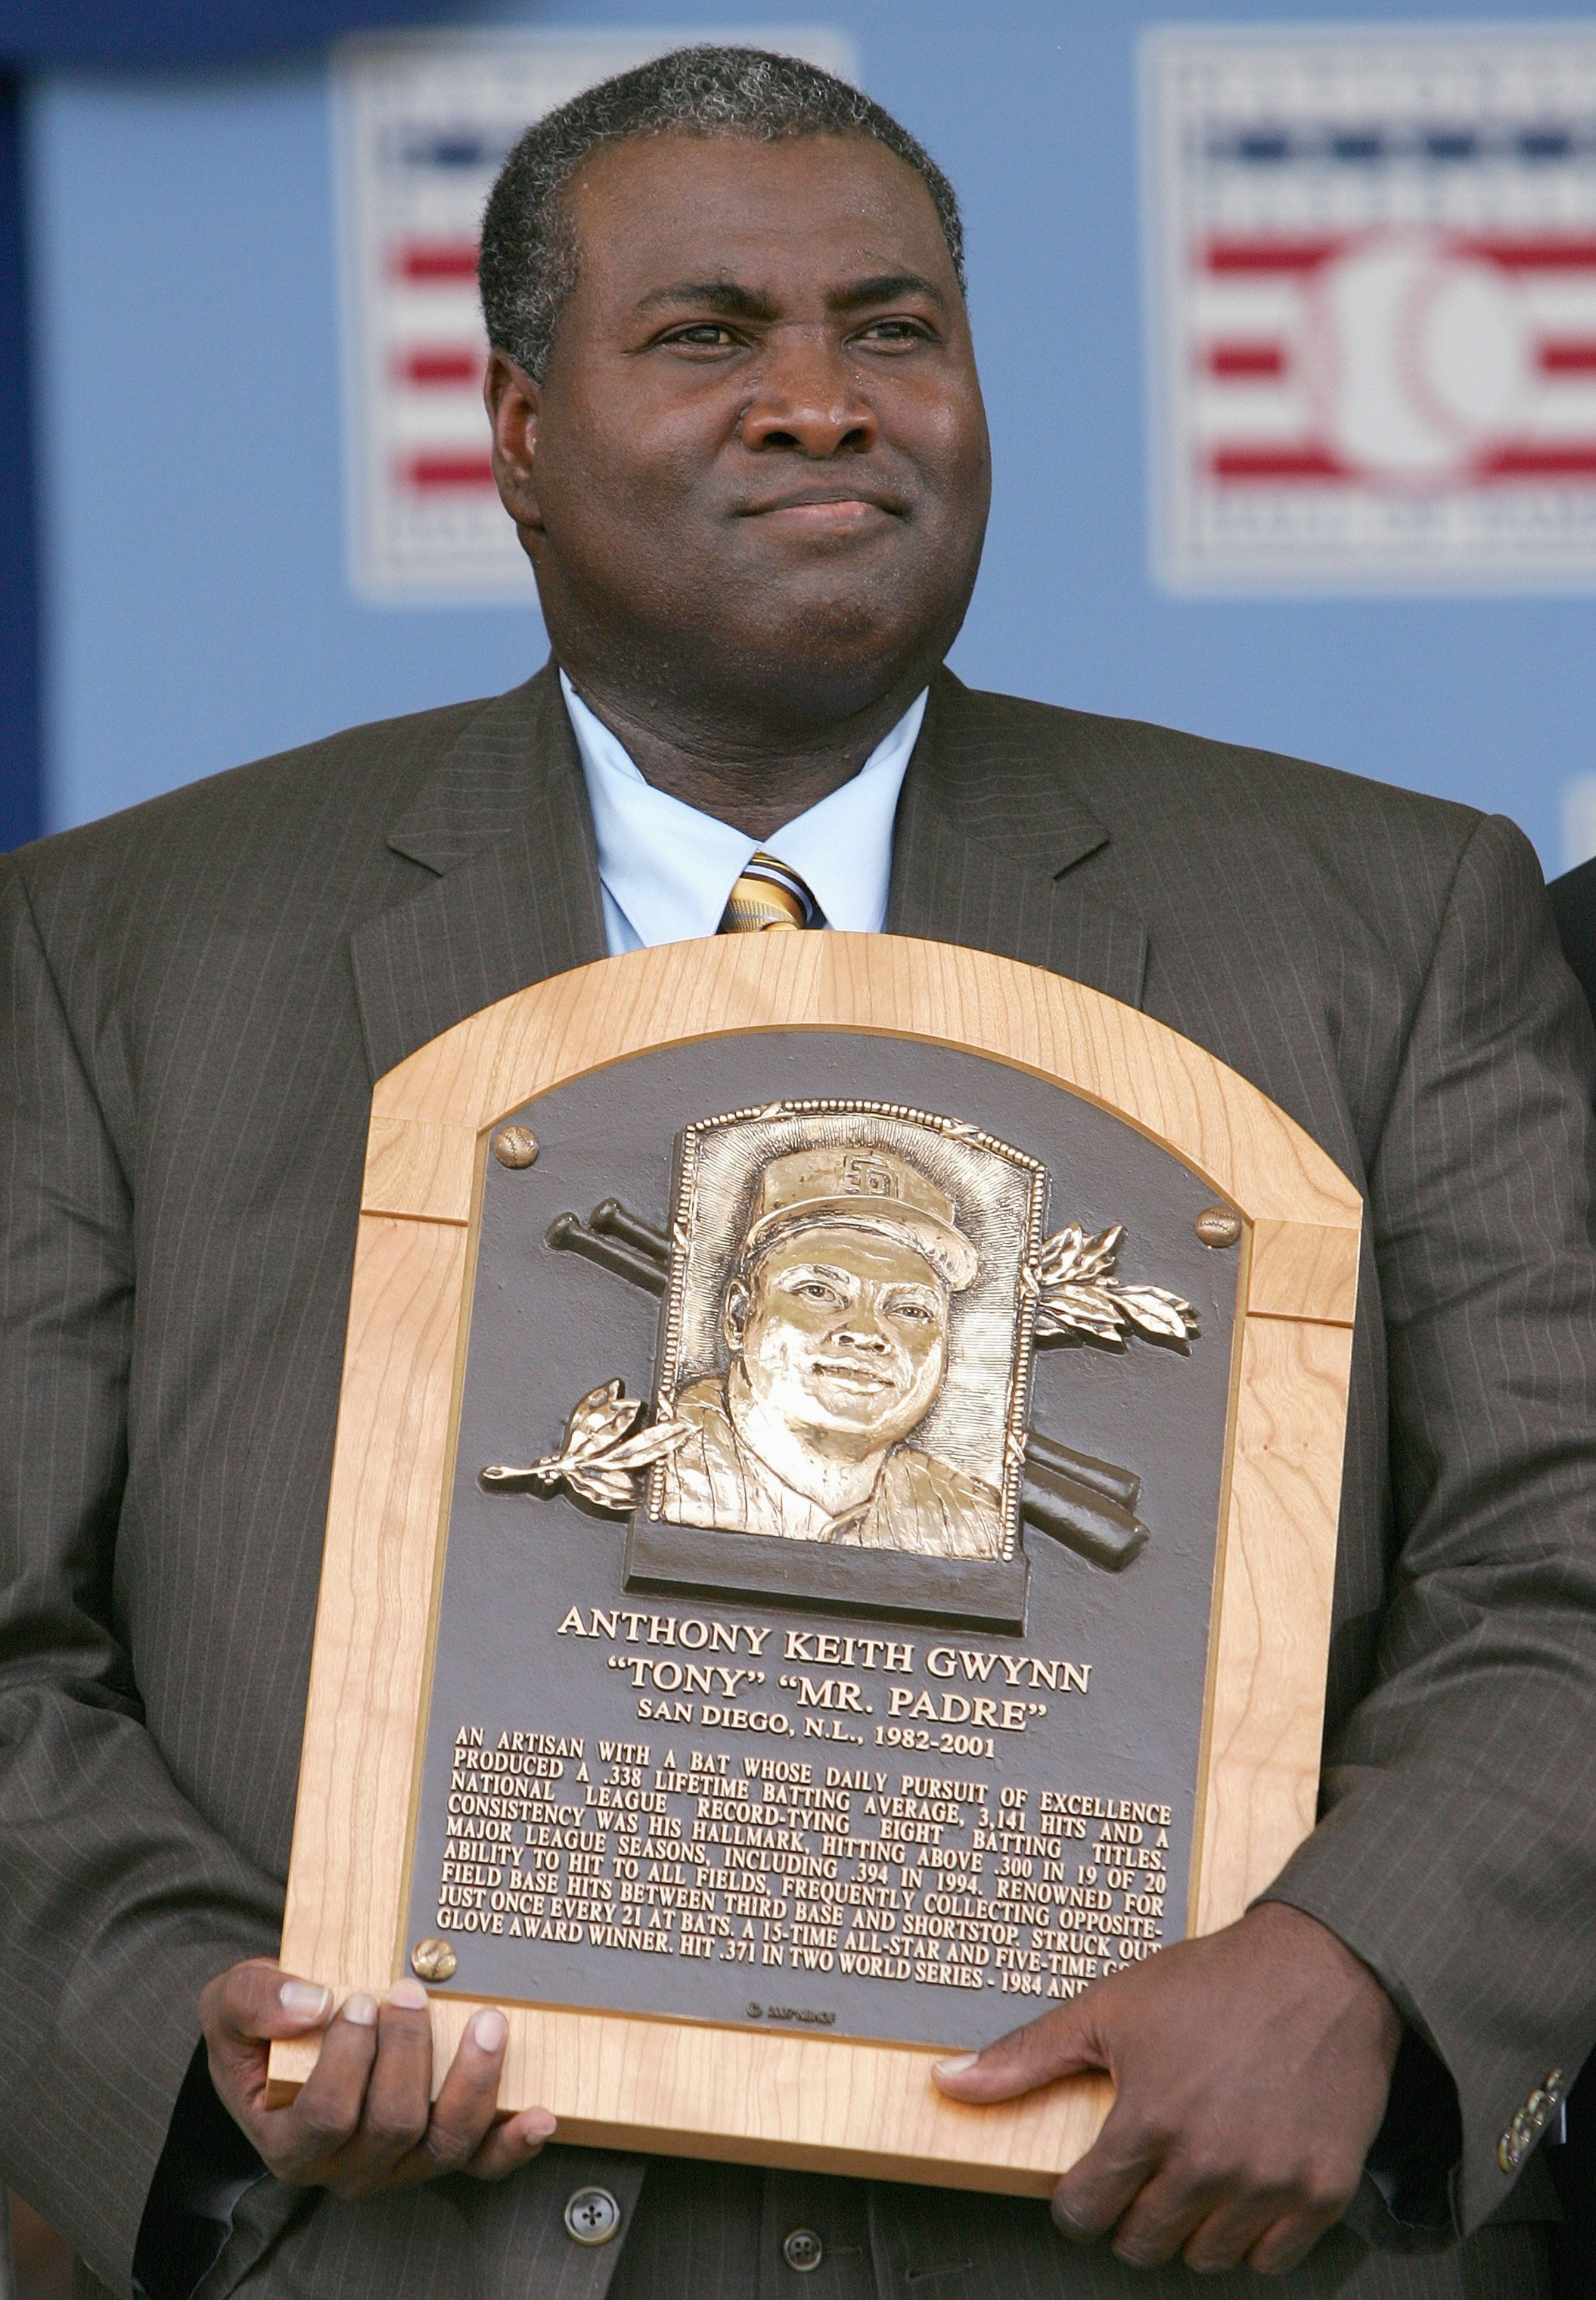 COOPERSTOWN, NY - JULY 29: 2007 inductee Tony Gwynn poses with his plaque at Clark Sports Center during the Baseball Hall of Fame induction ceremony on July 29, 2007 in Cooperstown, New York. (Photo by Chris McGrath/Getty Images)